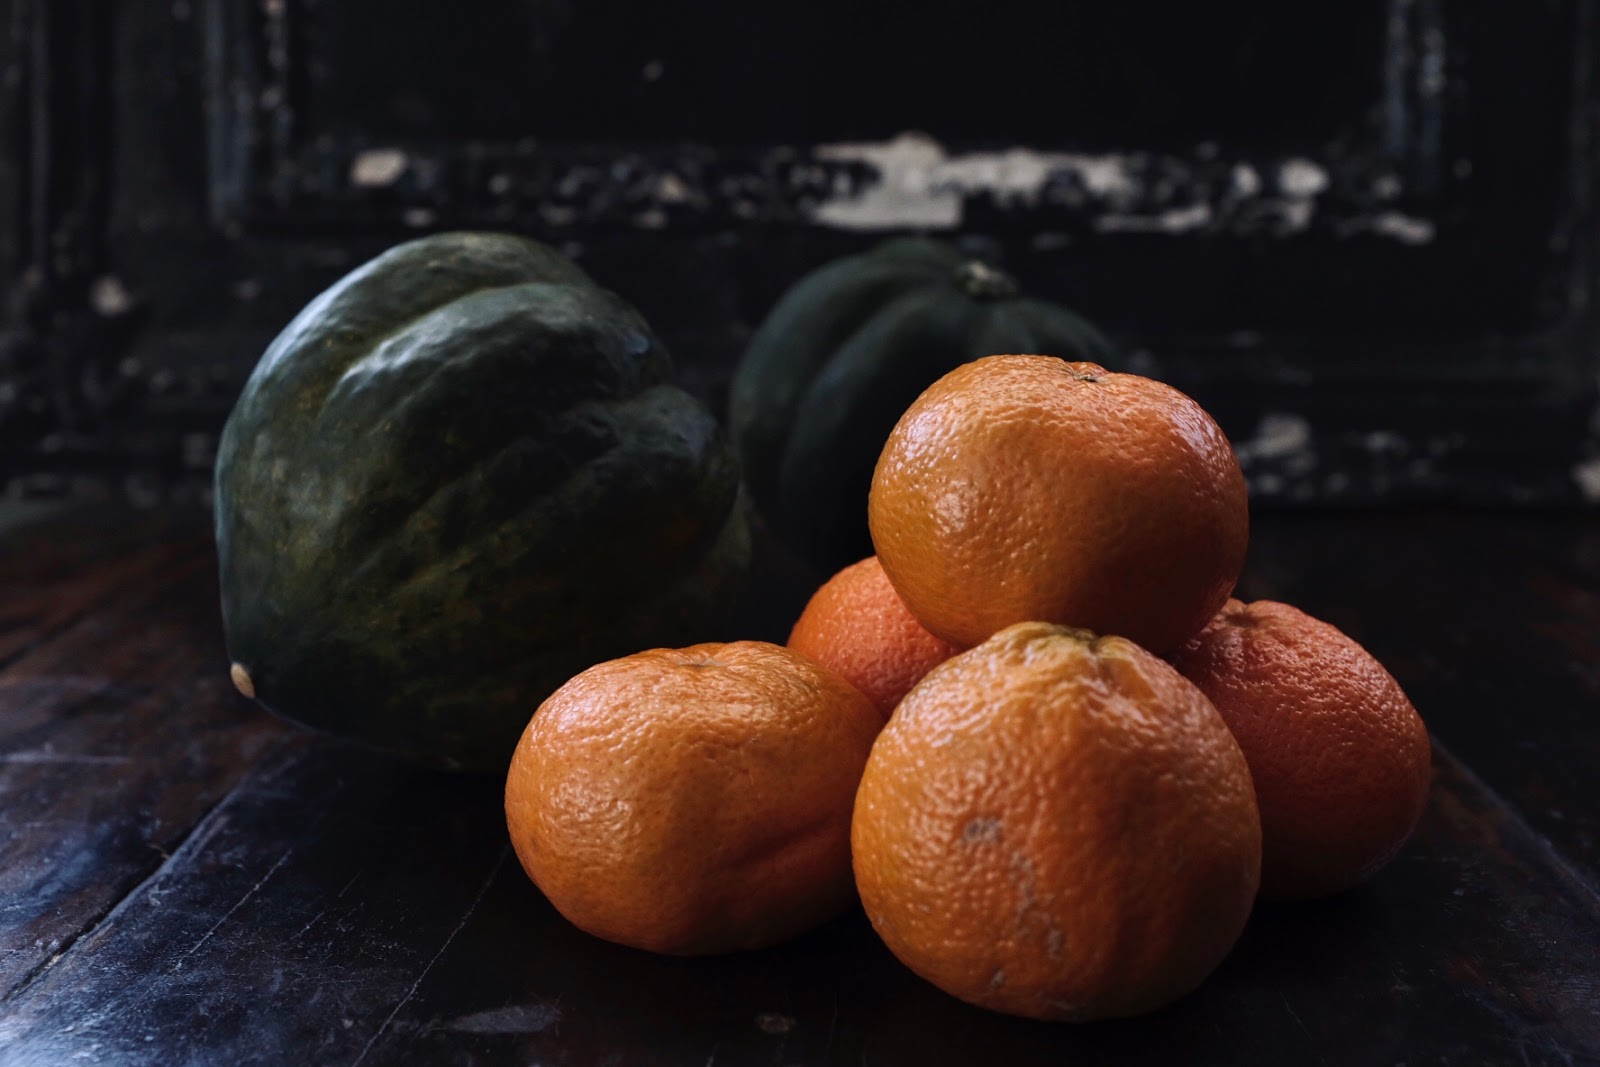 Stock up on long-lasting fresh foods like winter squash and citrus | Local Food Rocks